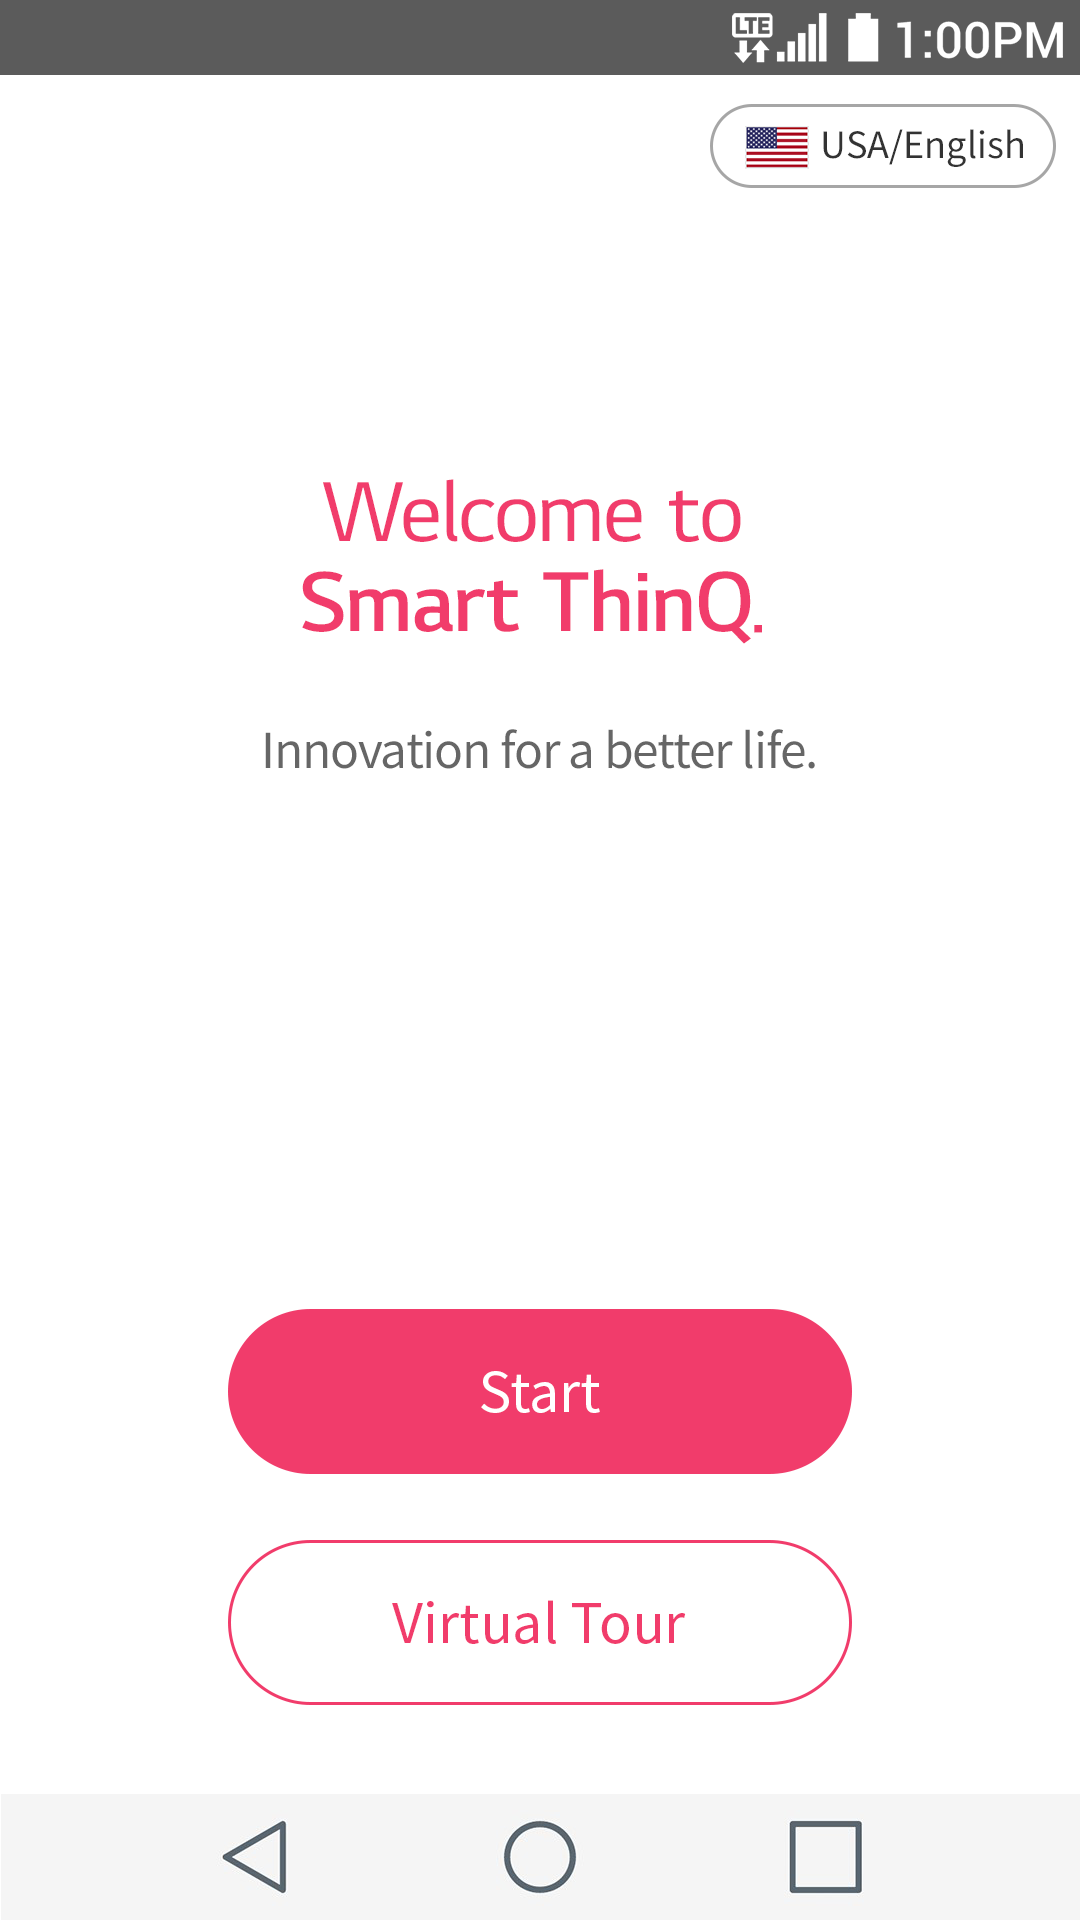 LG SmartThinQ APK Download